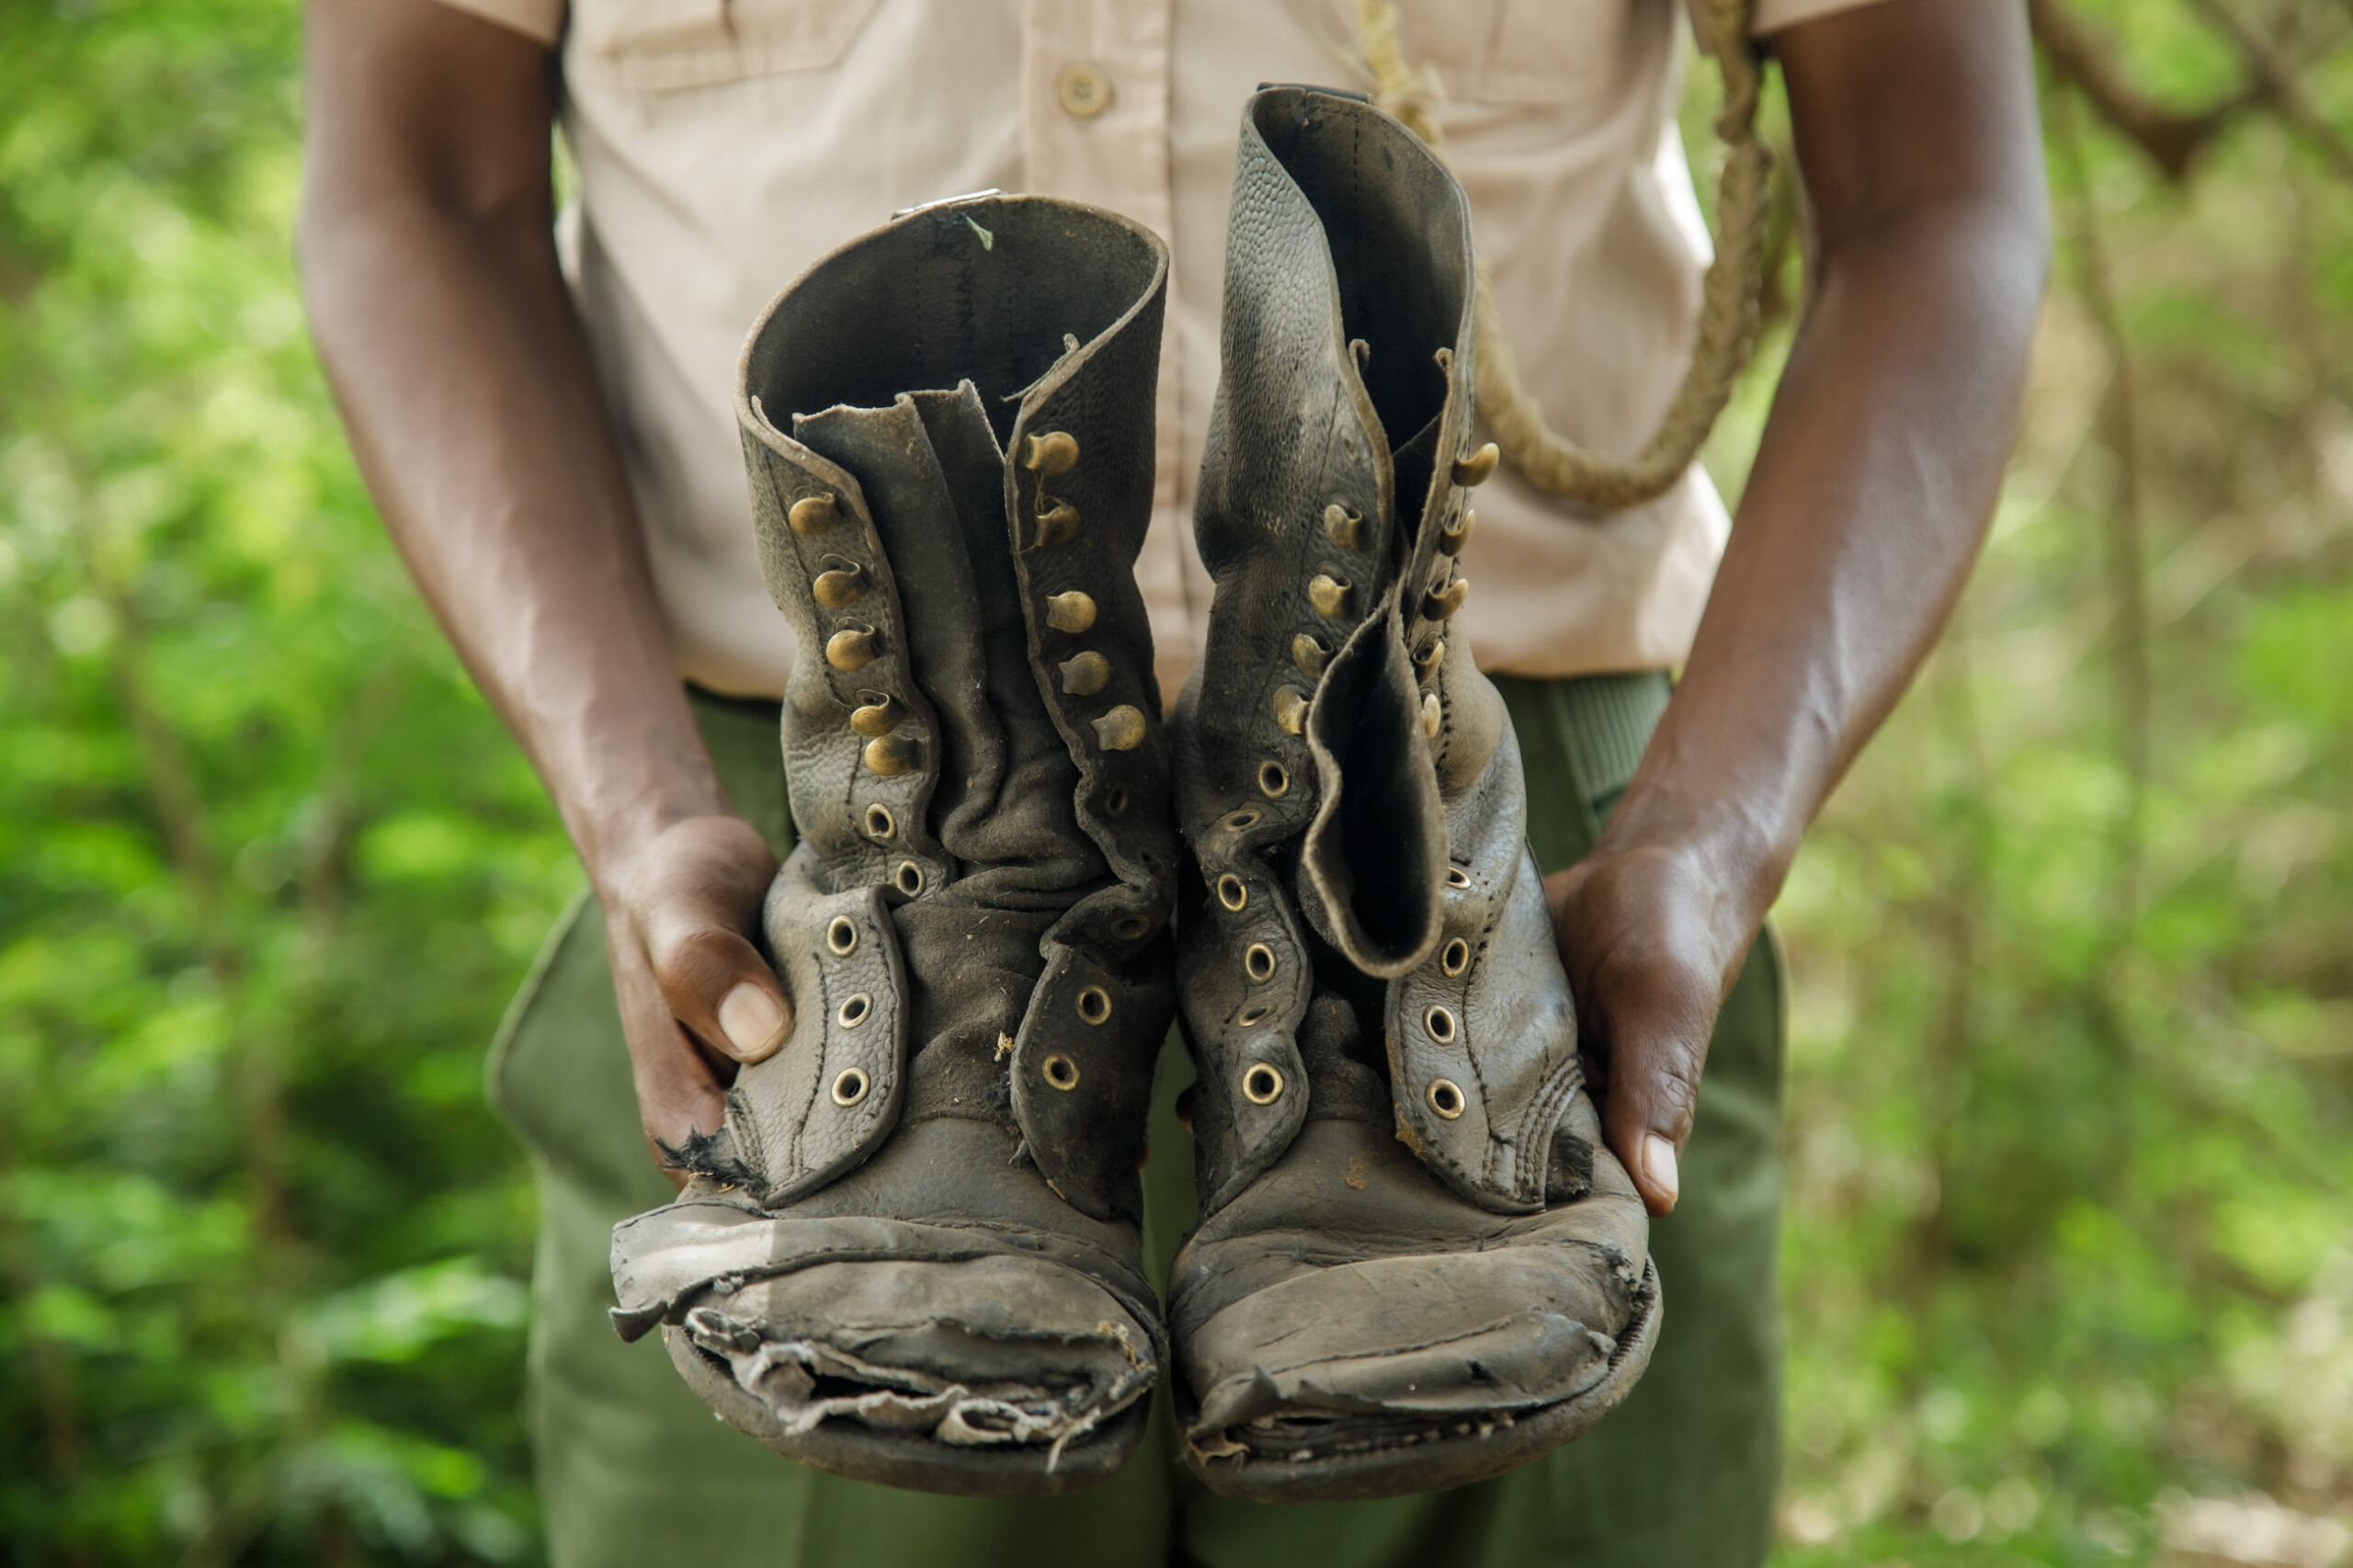 A Ranger stands, only hands and torso visible, with a pair of old, worn and torn boots.